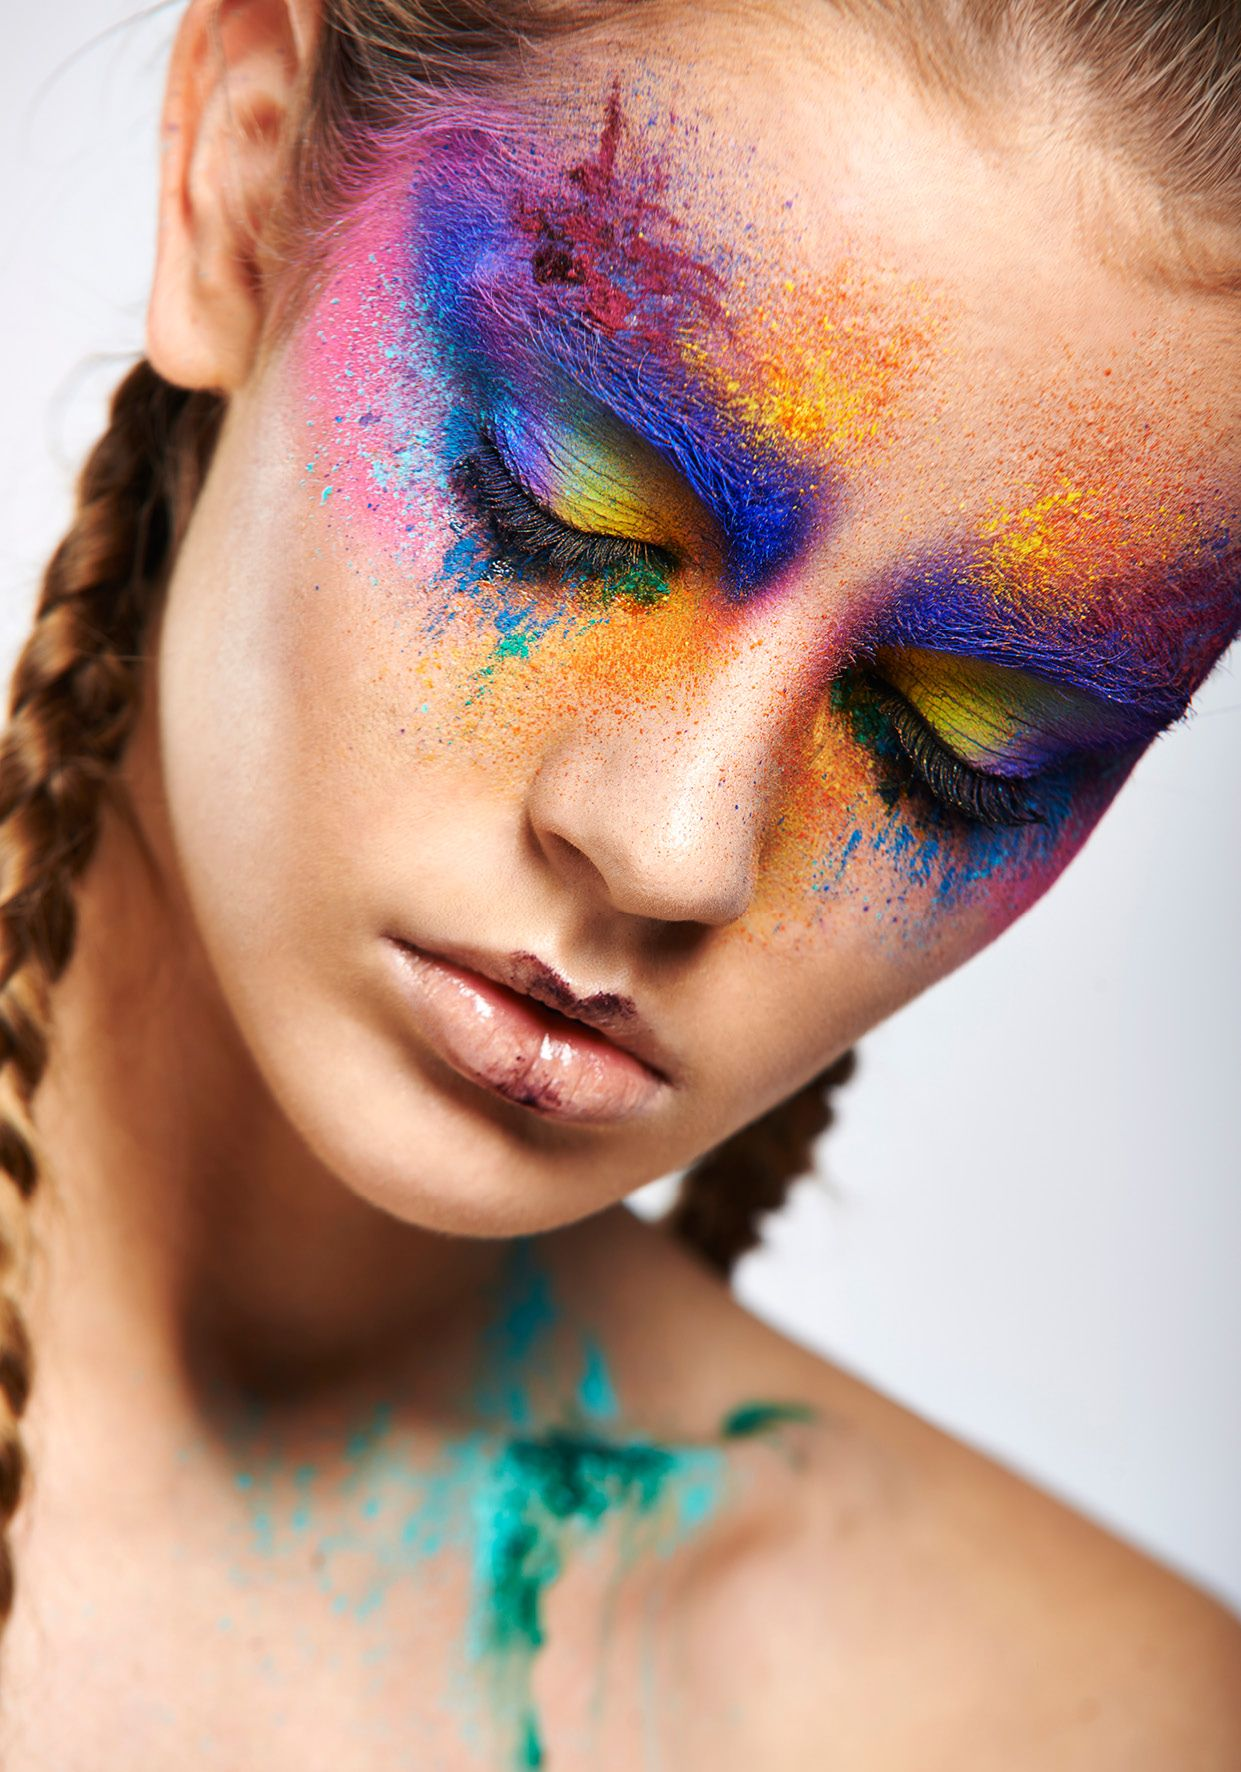 Visit The Post For More Amazing Makeup Pinterest Creative Makeup Makeup And Avant Garde